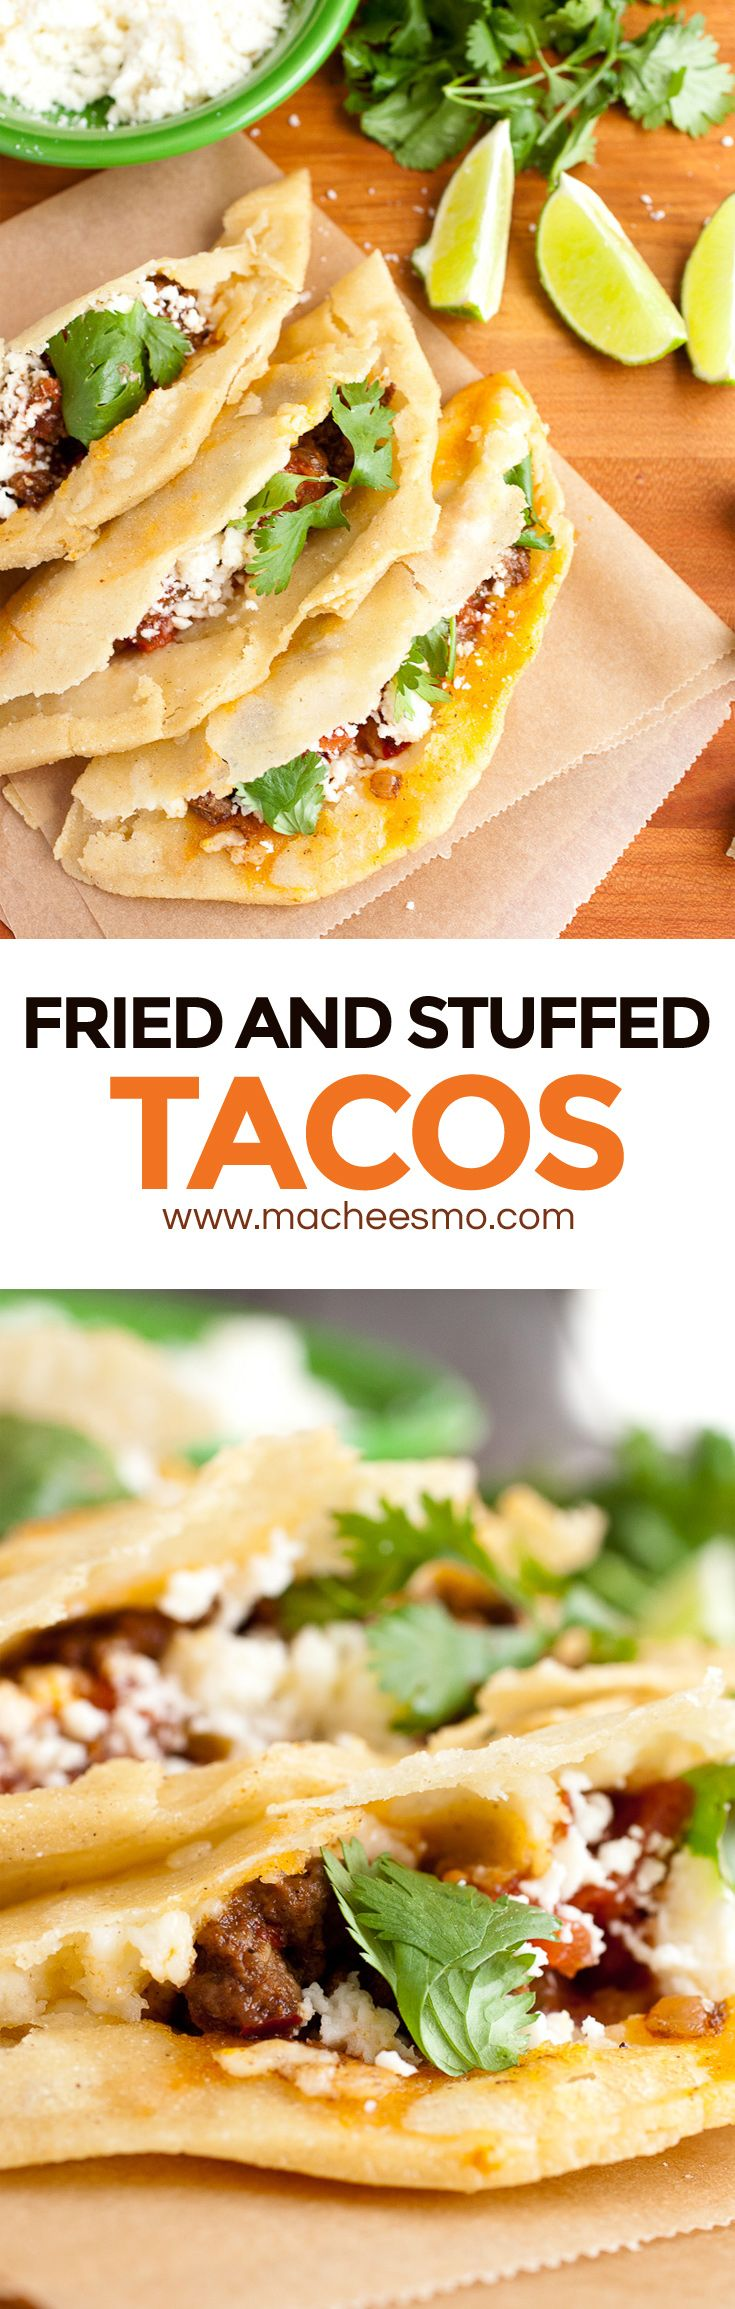 Fried and Stuffed Tacos: Inspired by the delicious Taco Especial at Los Tacos in NYC, this fried and stuffed taco is wonderfully crispy on the outside and stuffed with whatever toppings you can dream up! It's a little work to get it right, but totally worth it! | macheesmo.com